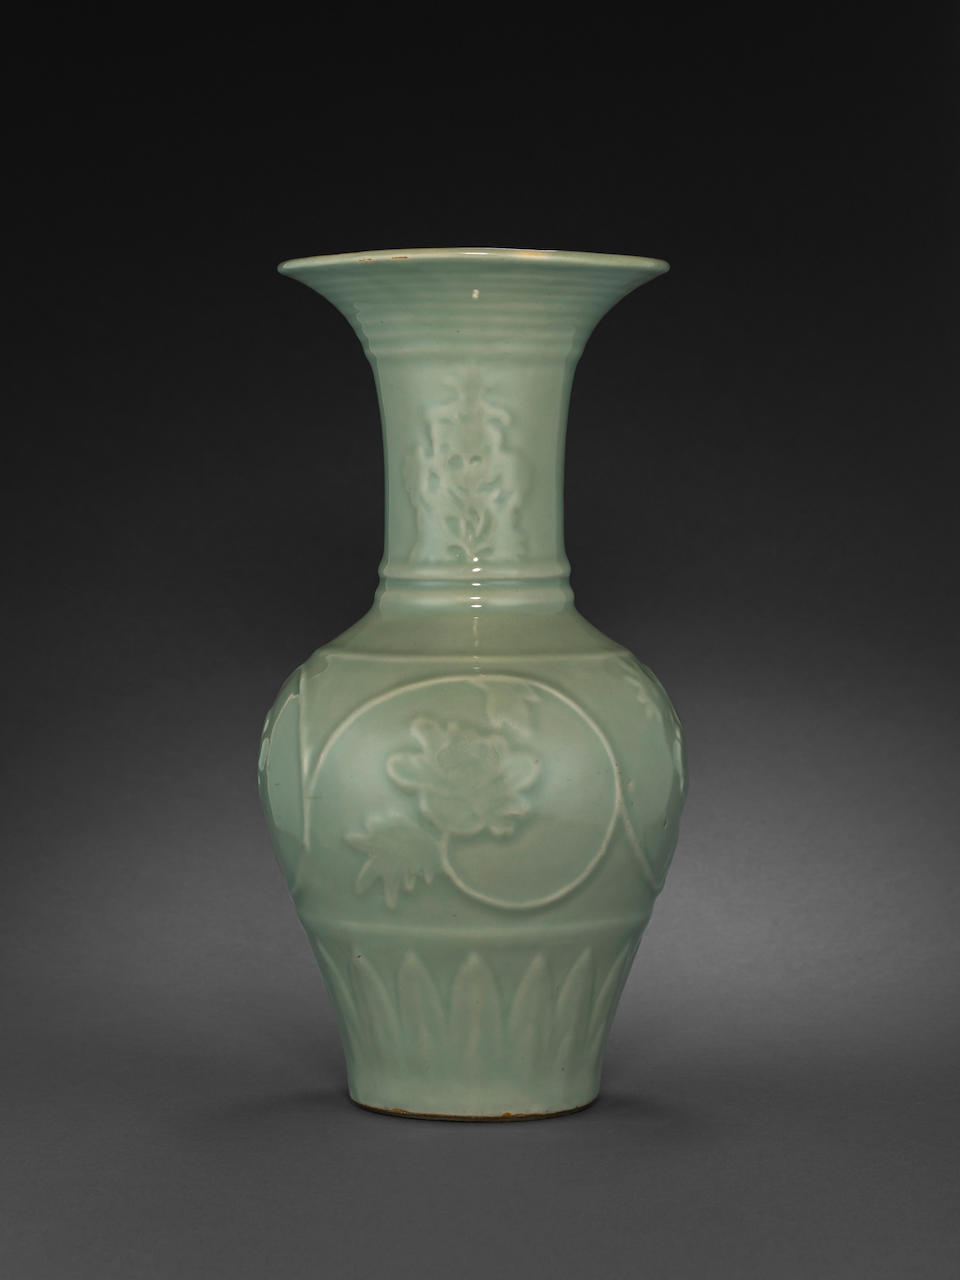 A fine and rare Longquan celadon vase with molded decoration Yuan dynasty